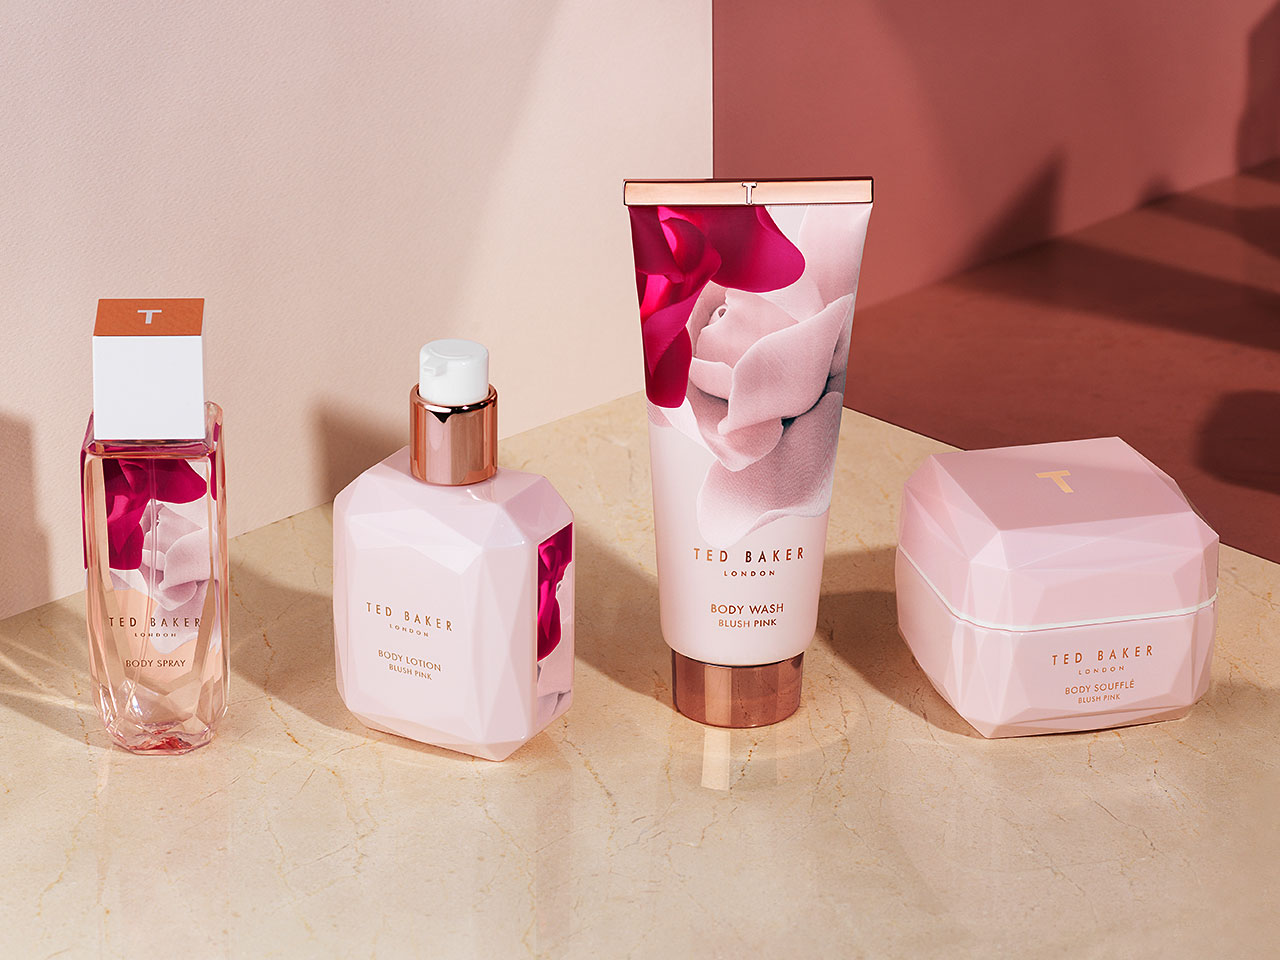 Ted Baker Porcelain Rose Bath & Body Collection